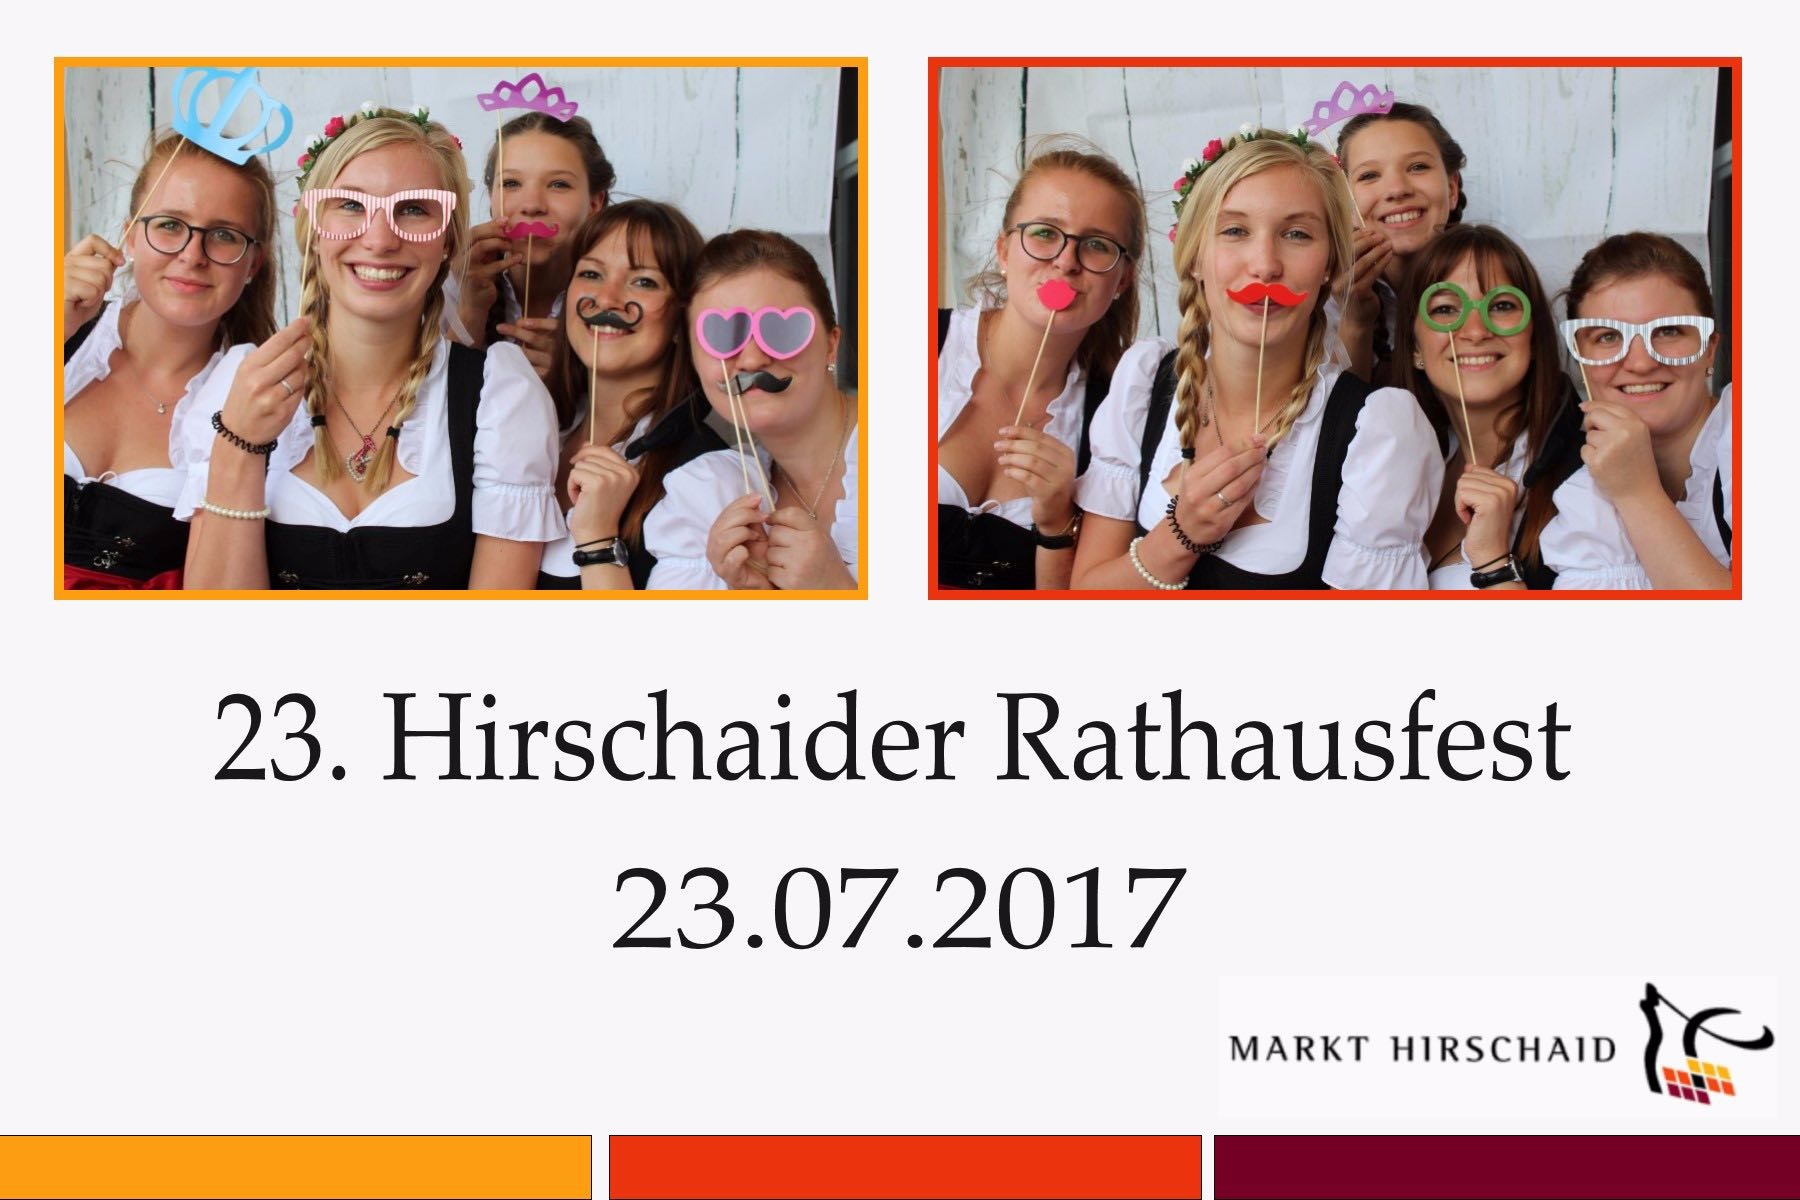 Rathausfest in Hirschaid